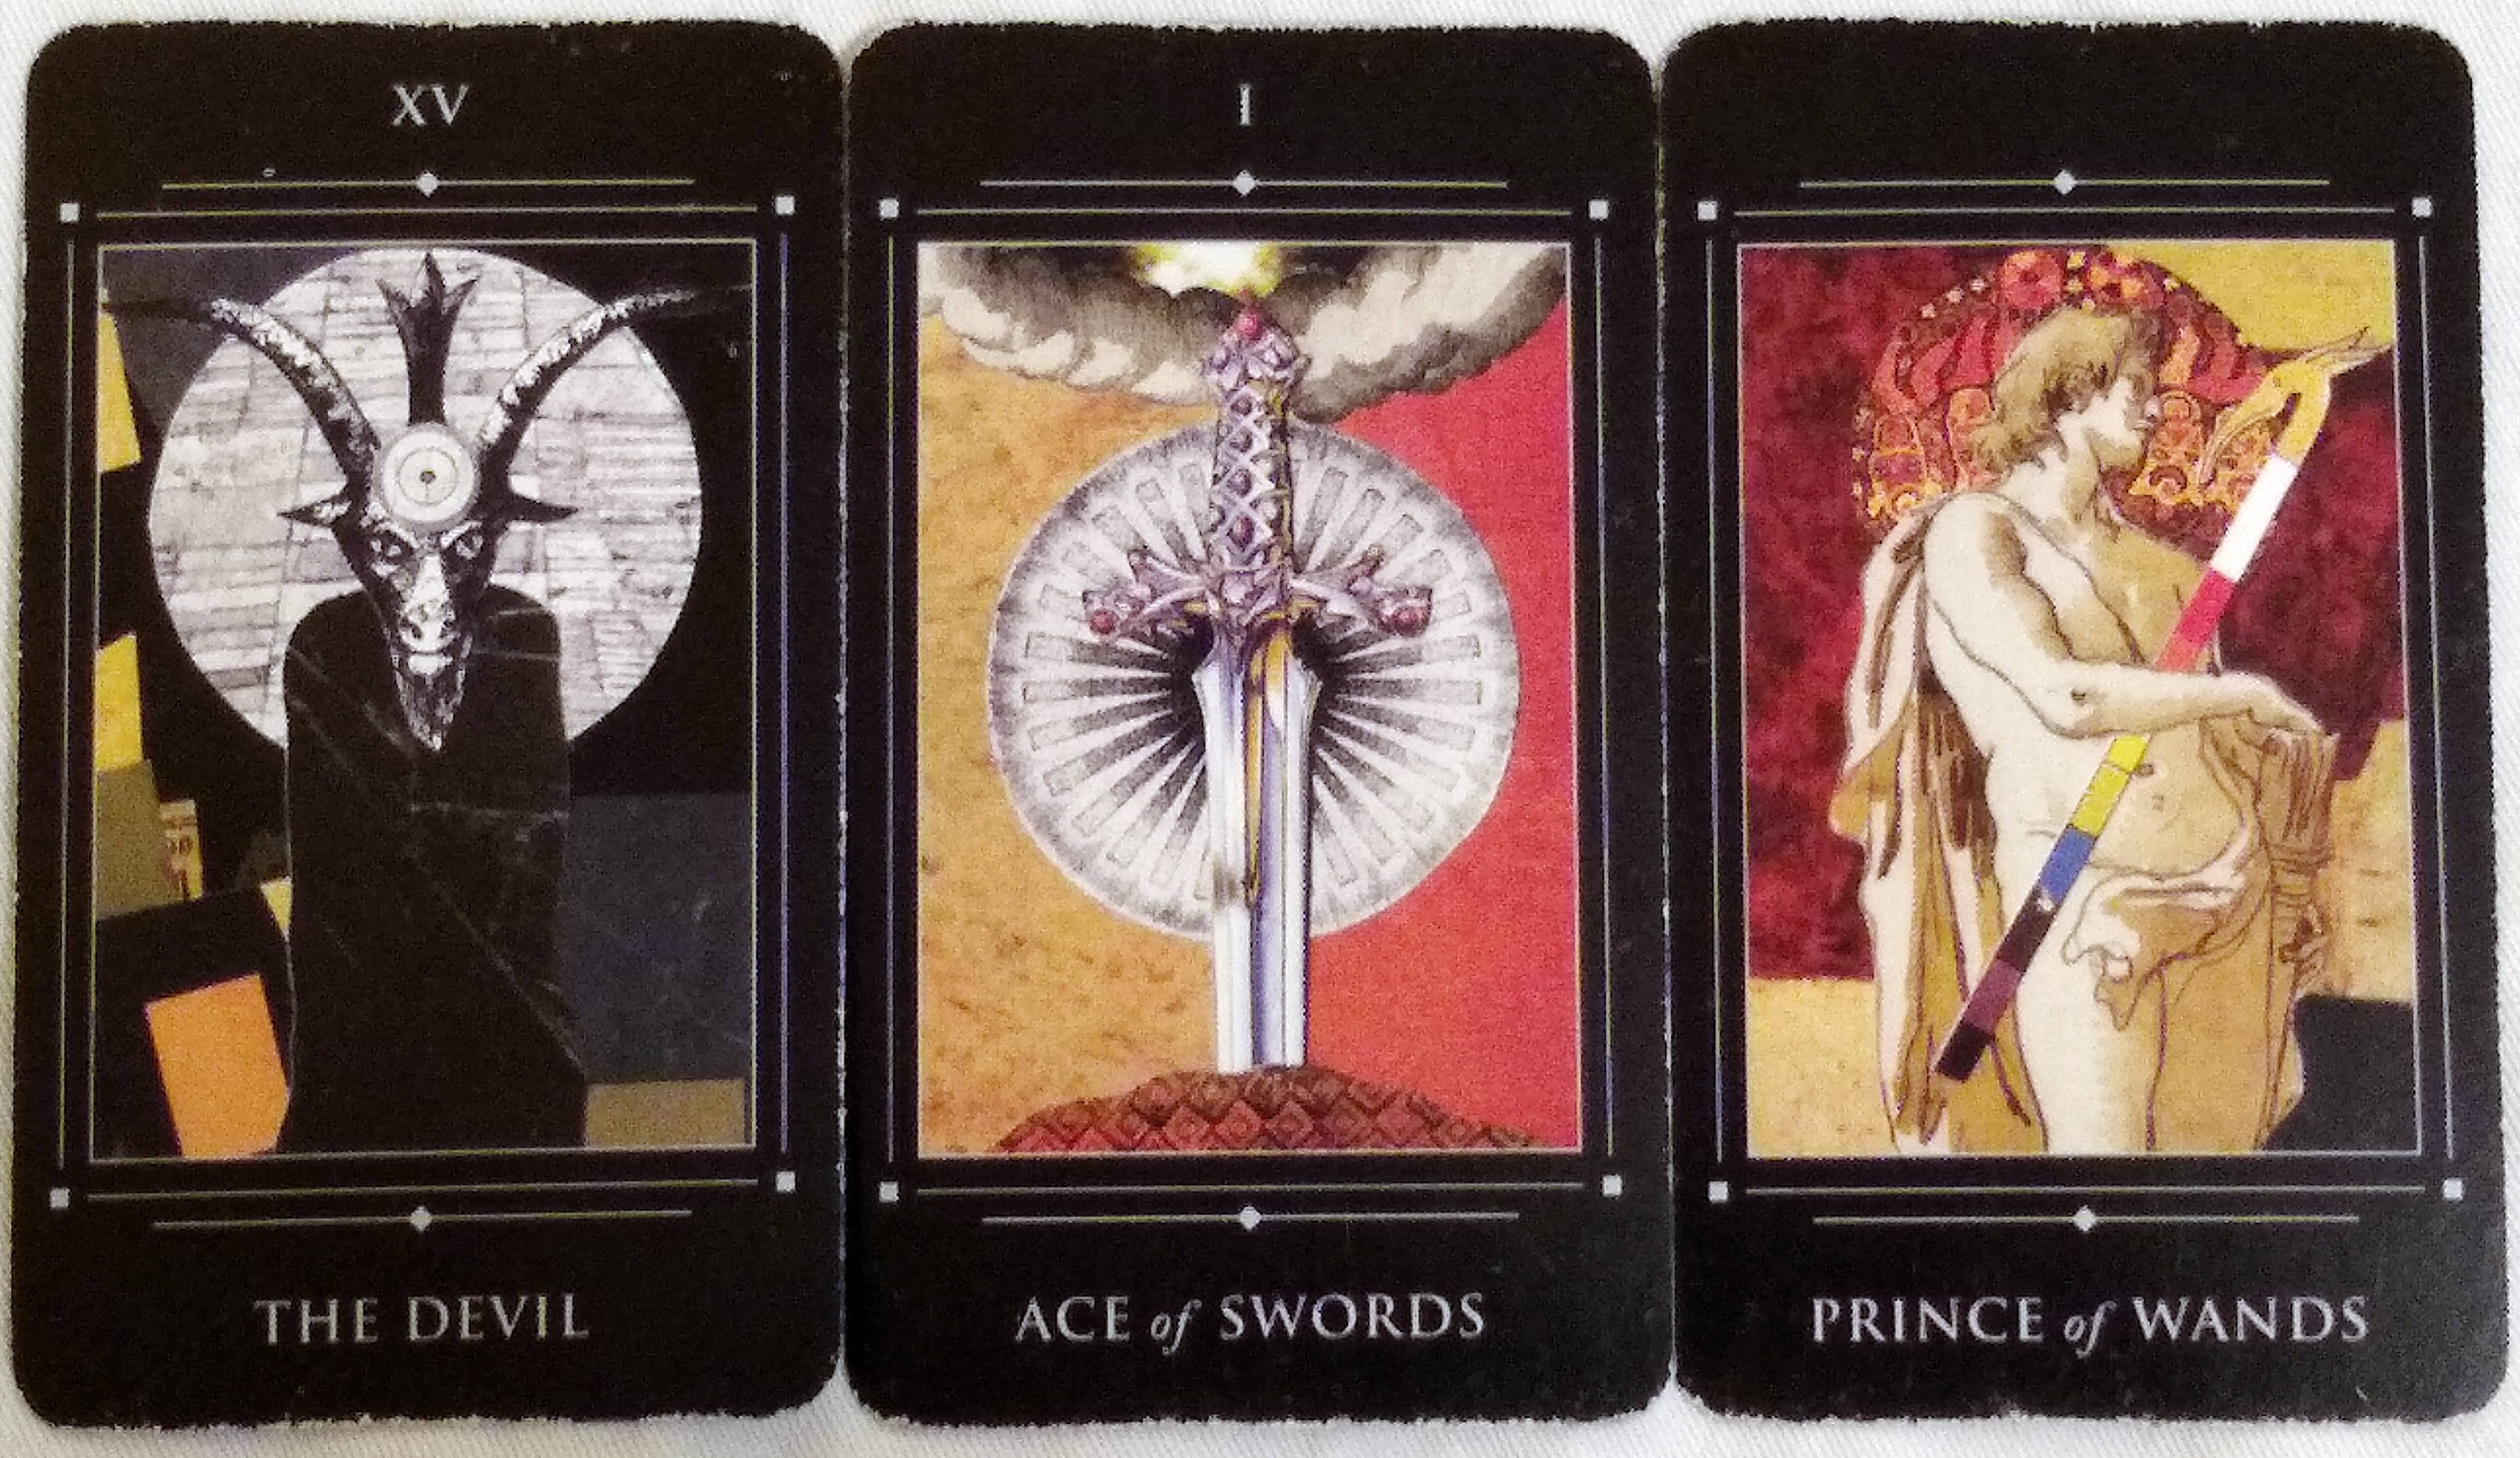 Red Magician: The Devil [XV], Ace of Swords, & Prince of Wands.